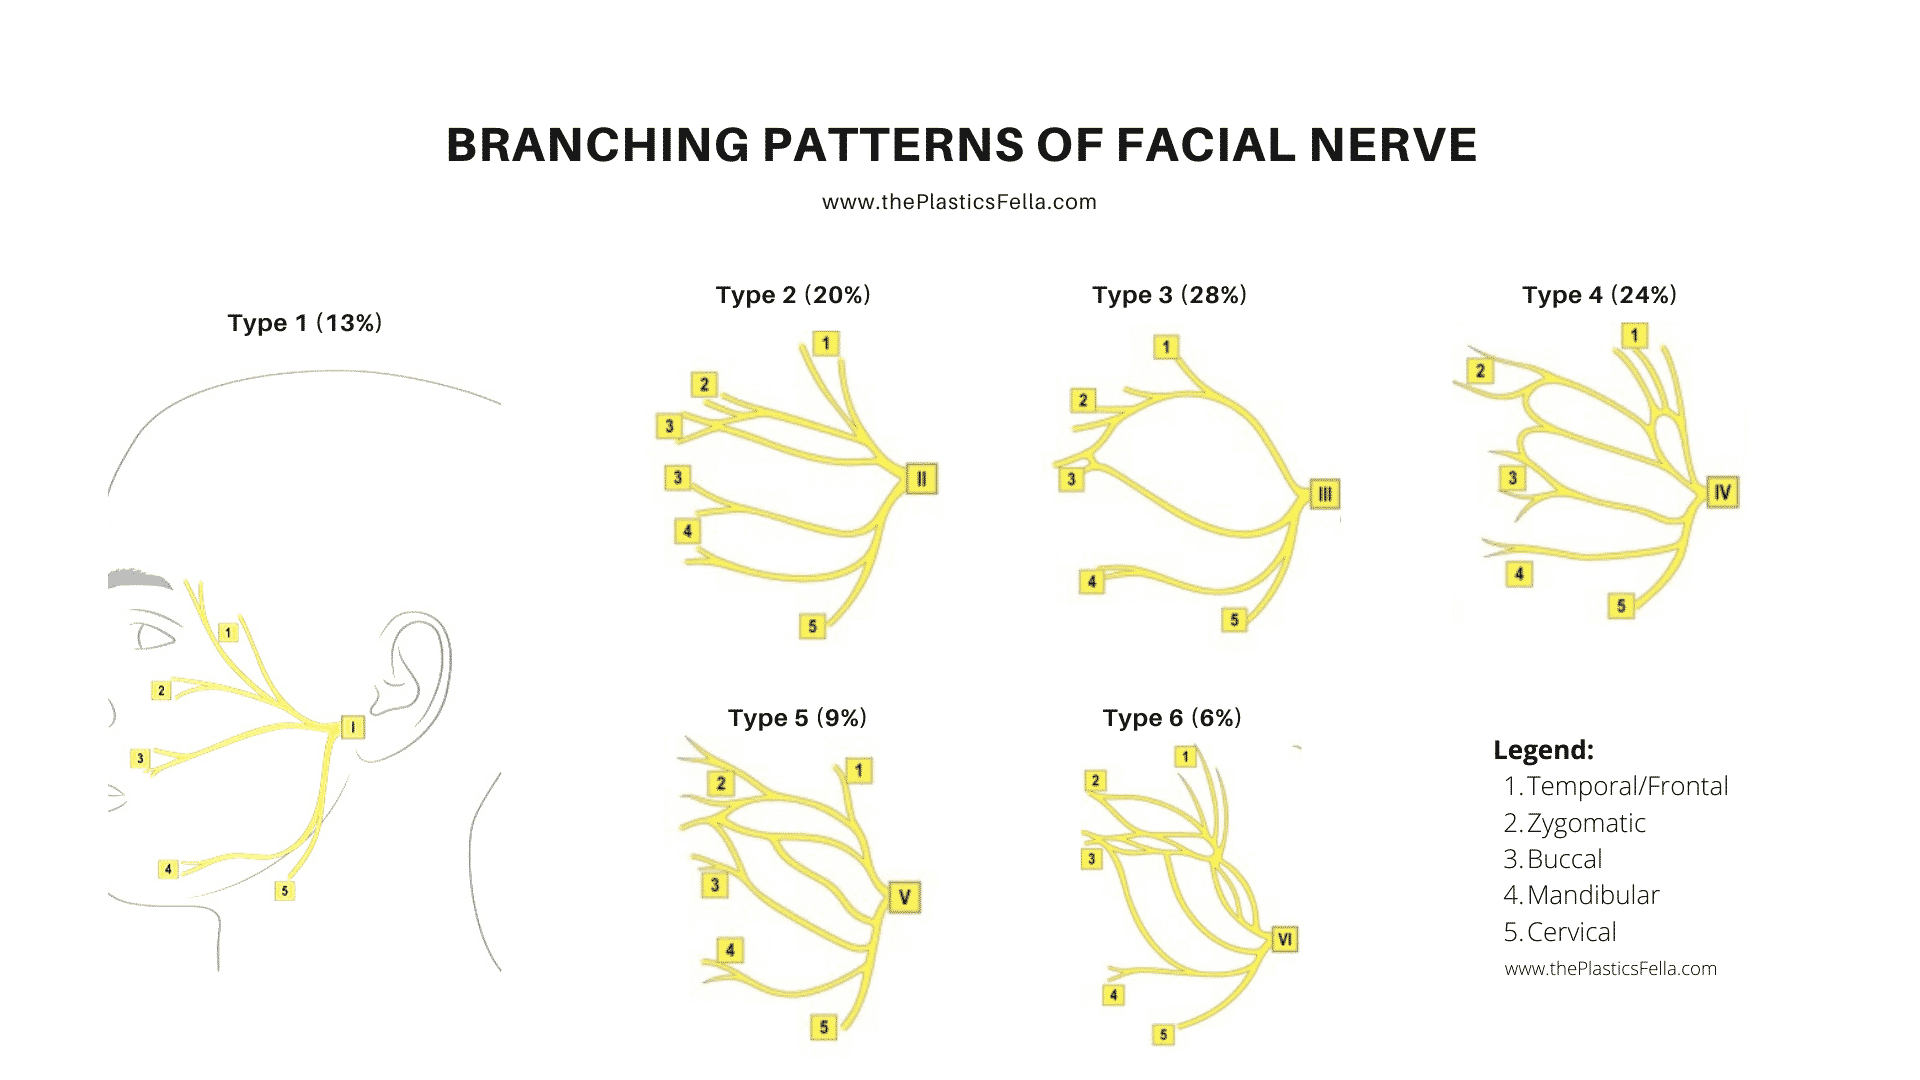 Branching patterns of the facial nerve